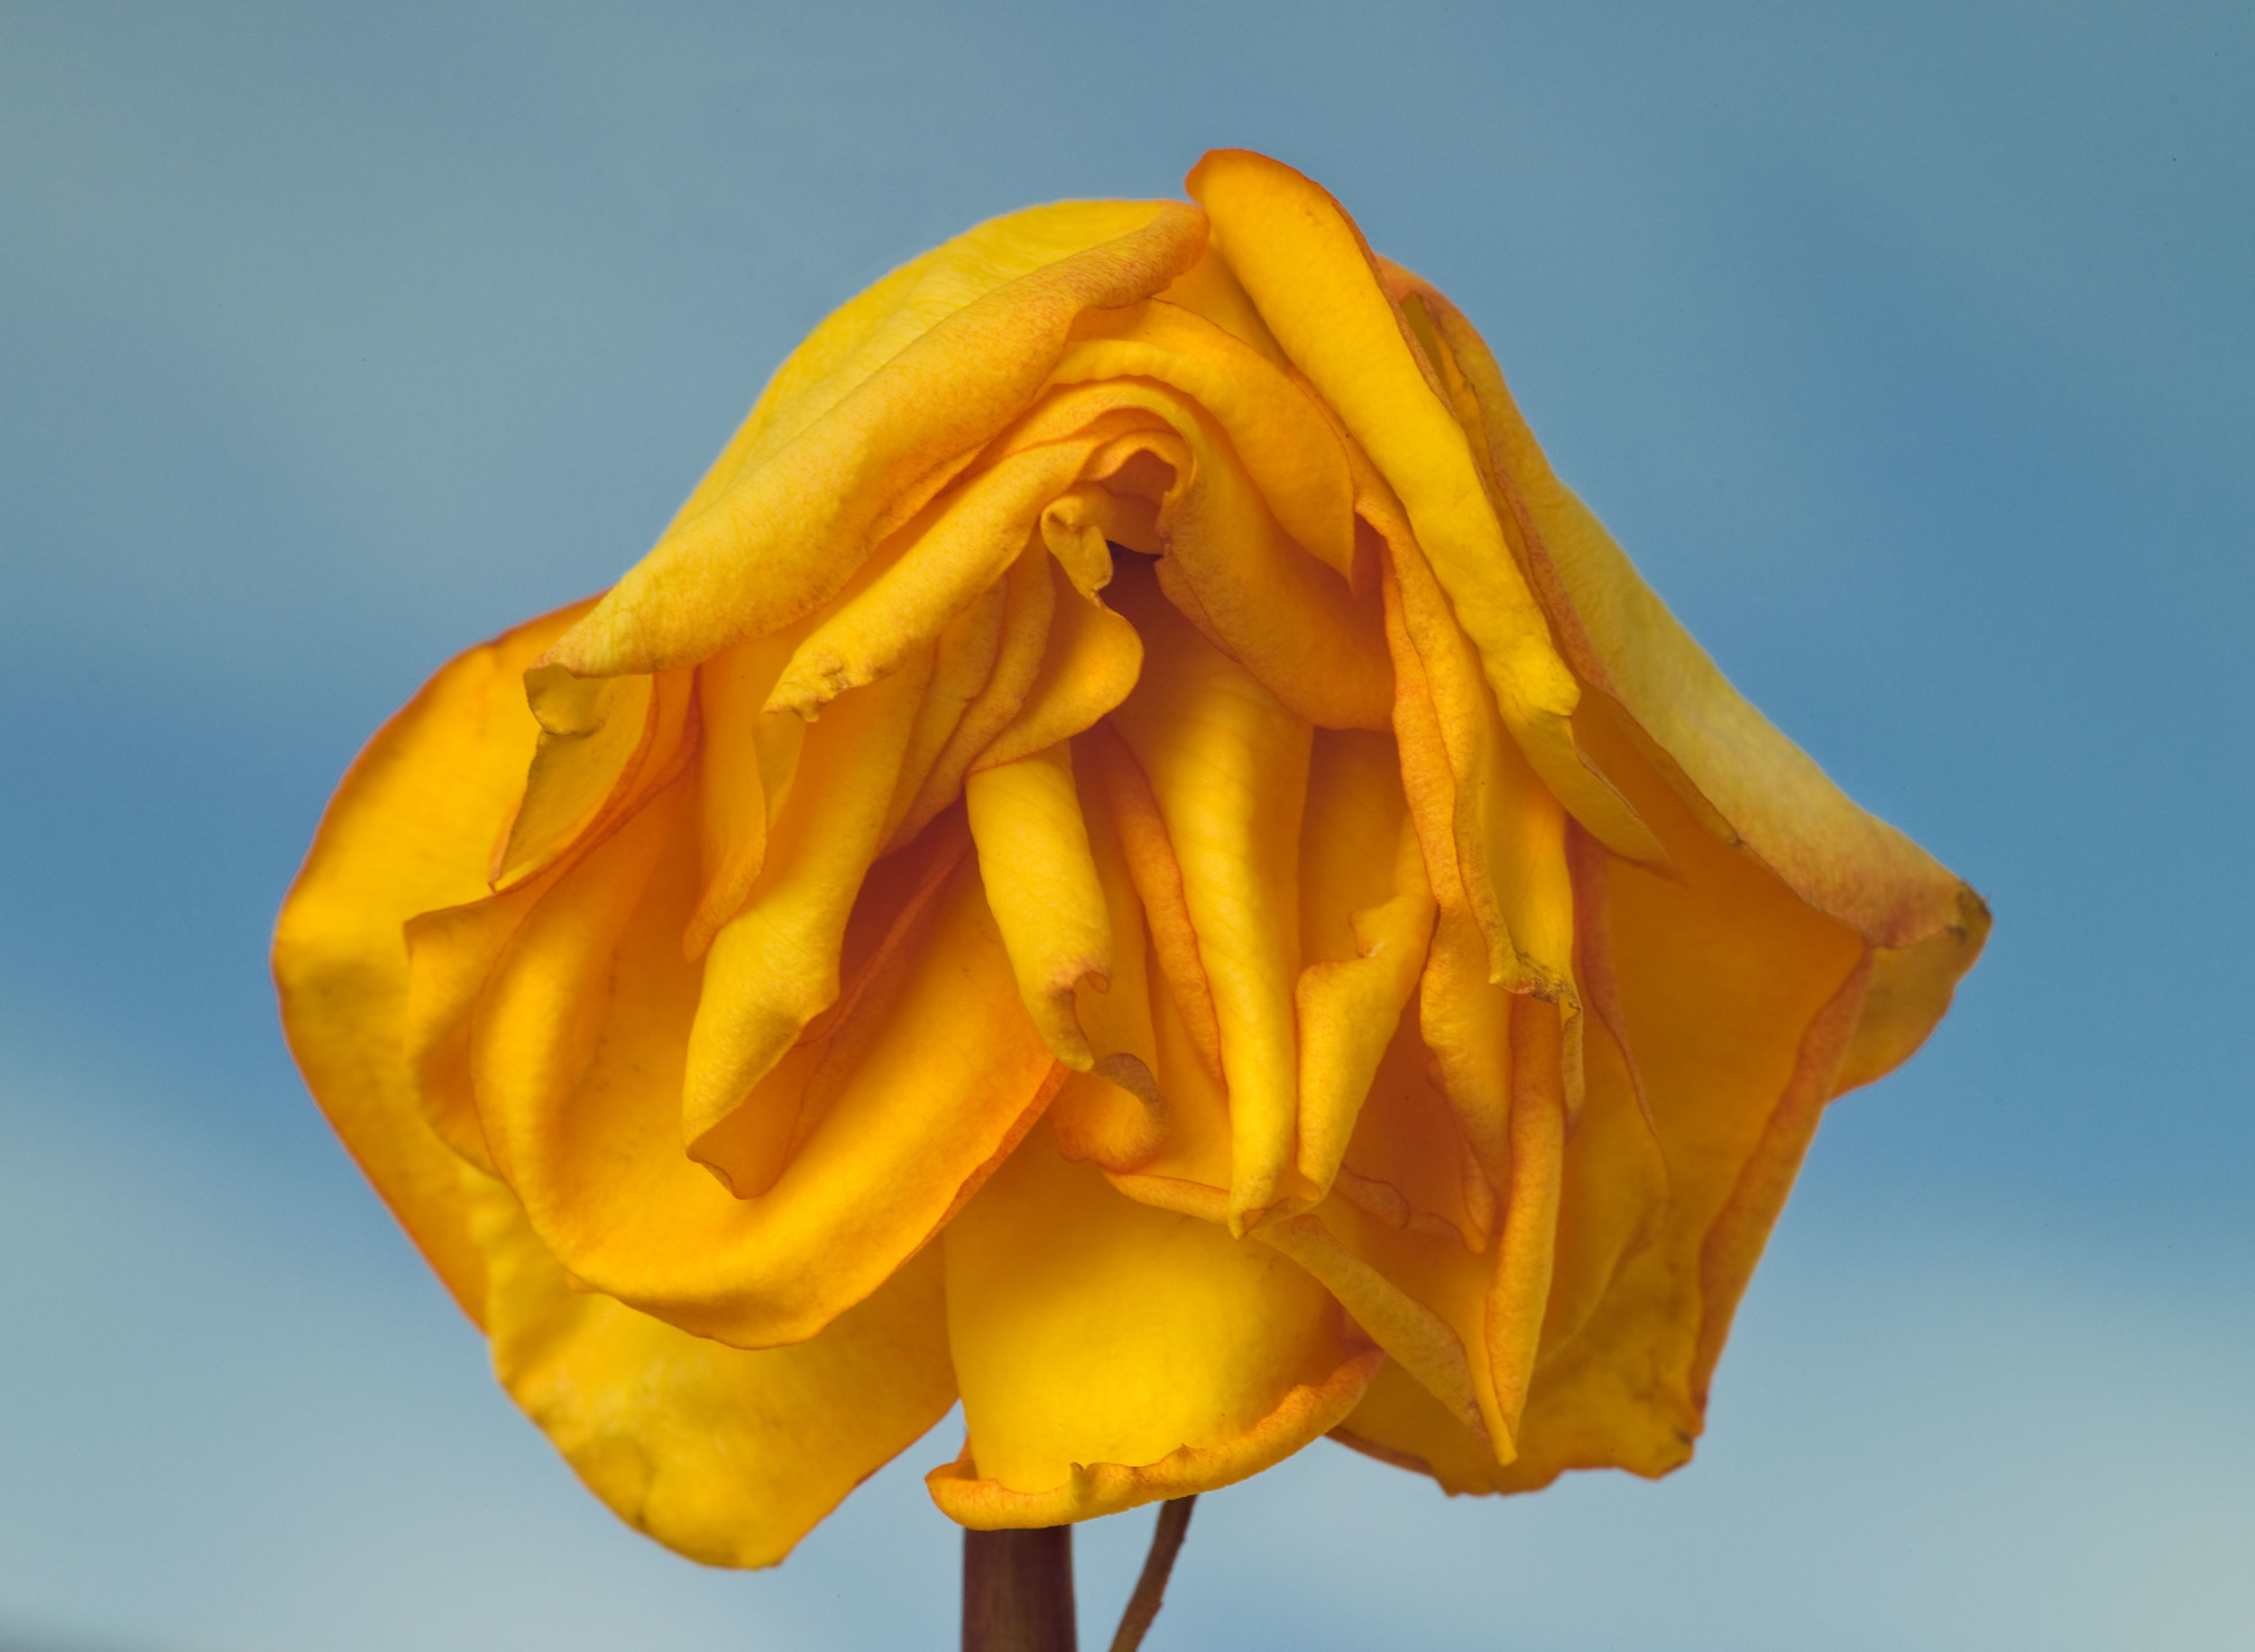 080209-MMFC0015-aging-yellow-rose.jpg